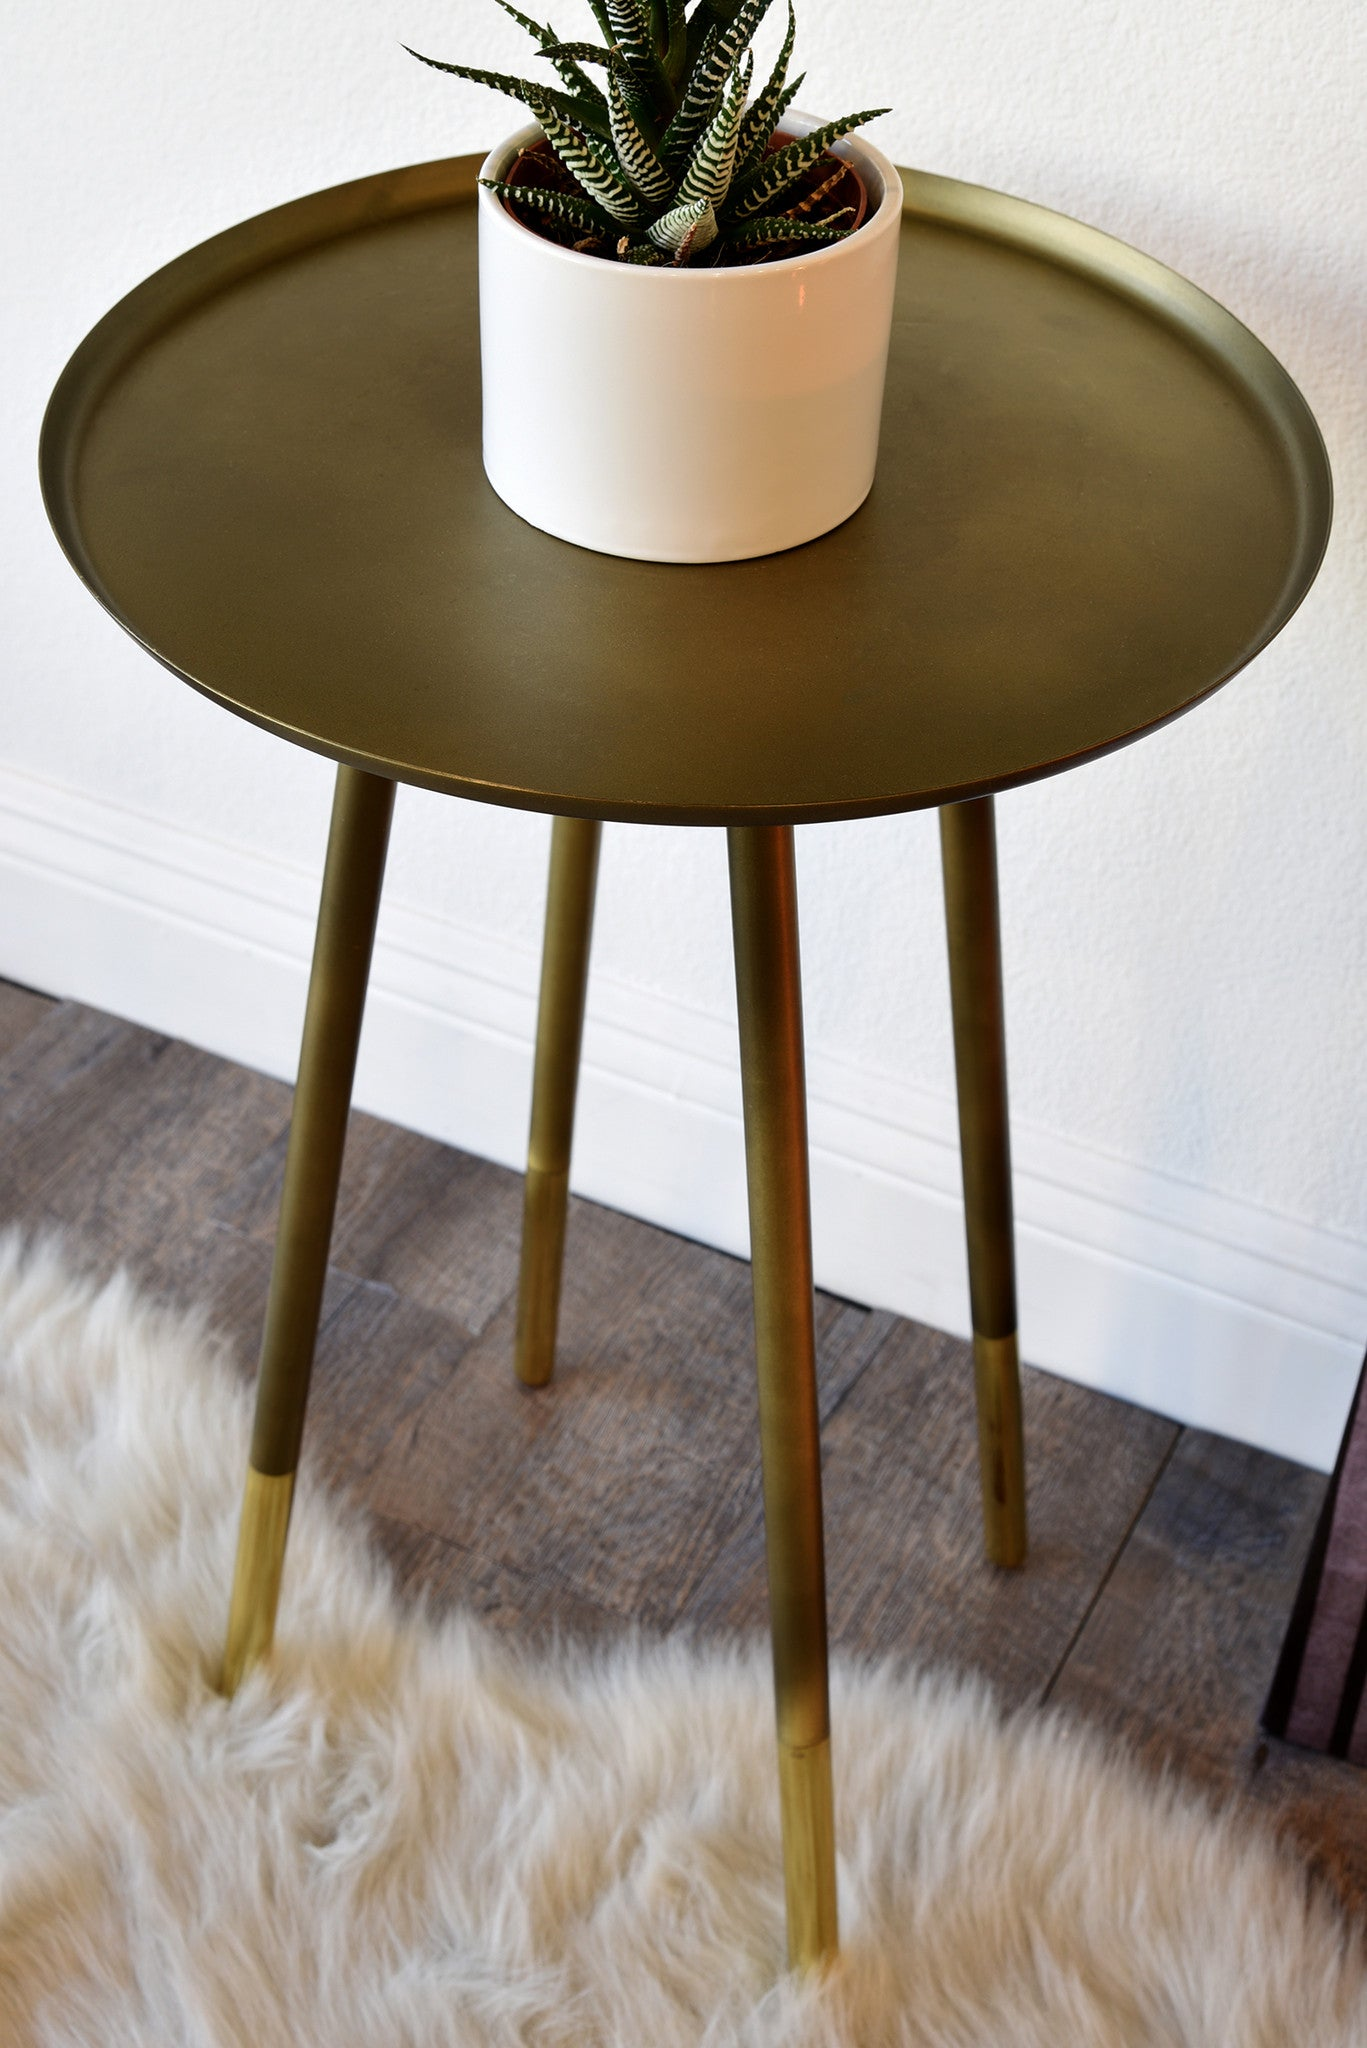 retro mid century modern end table  antiqued and polished brass  - retro mid century modern end table  antiqued and polished brass